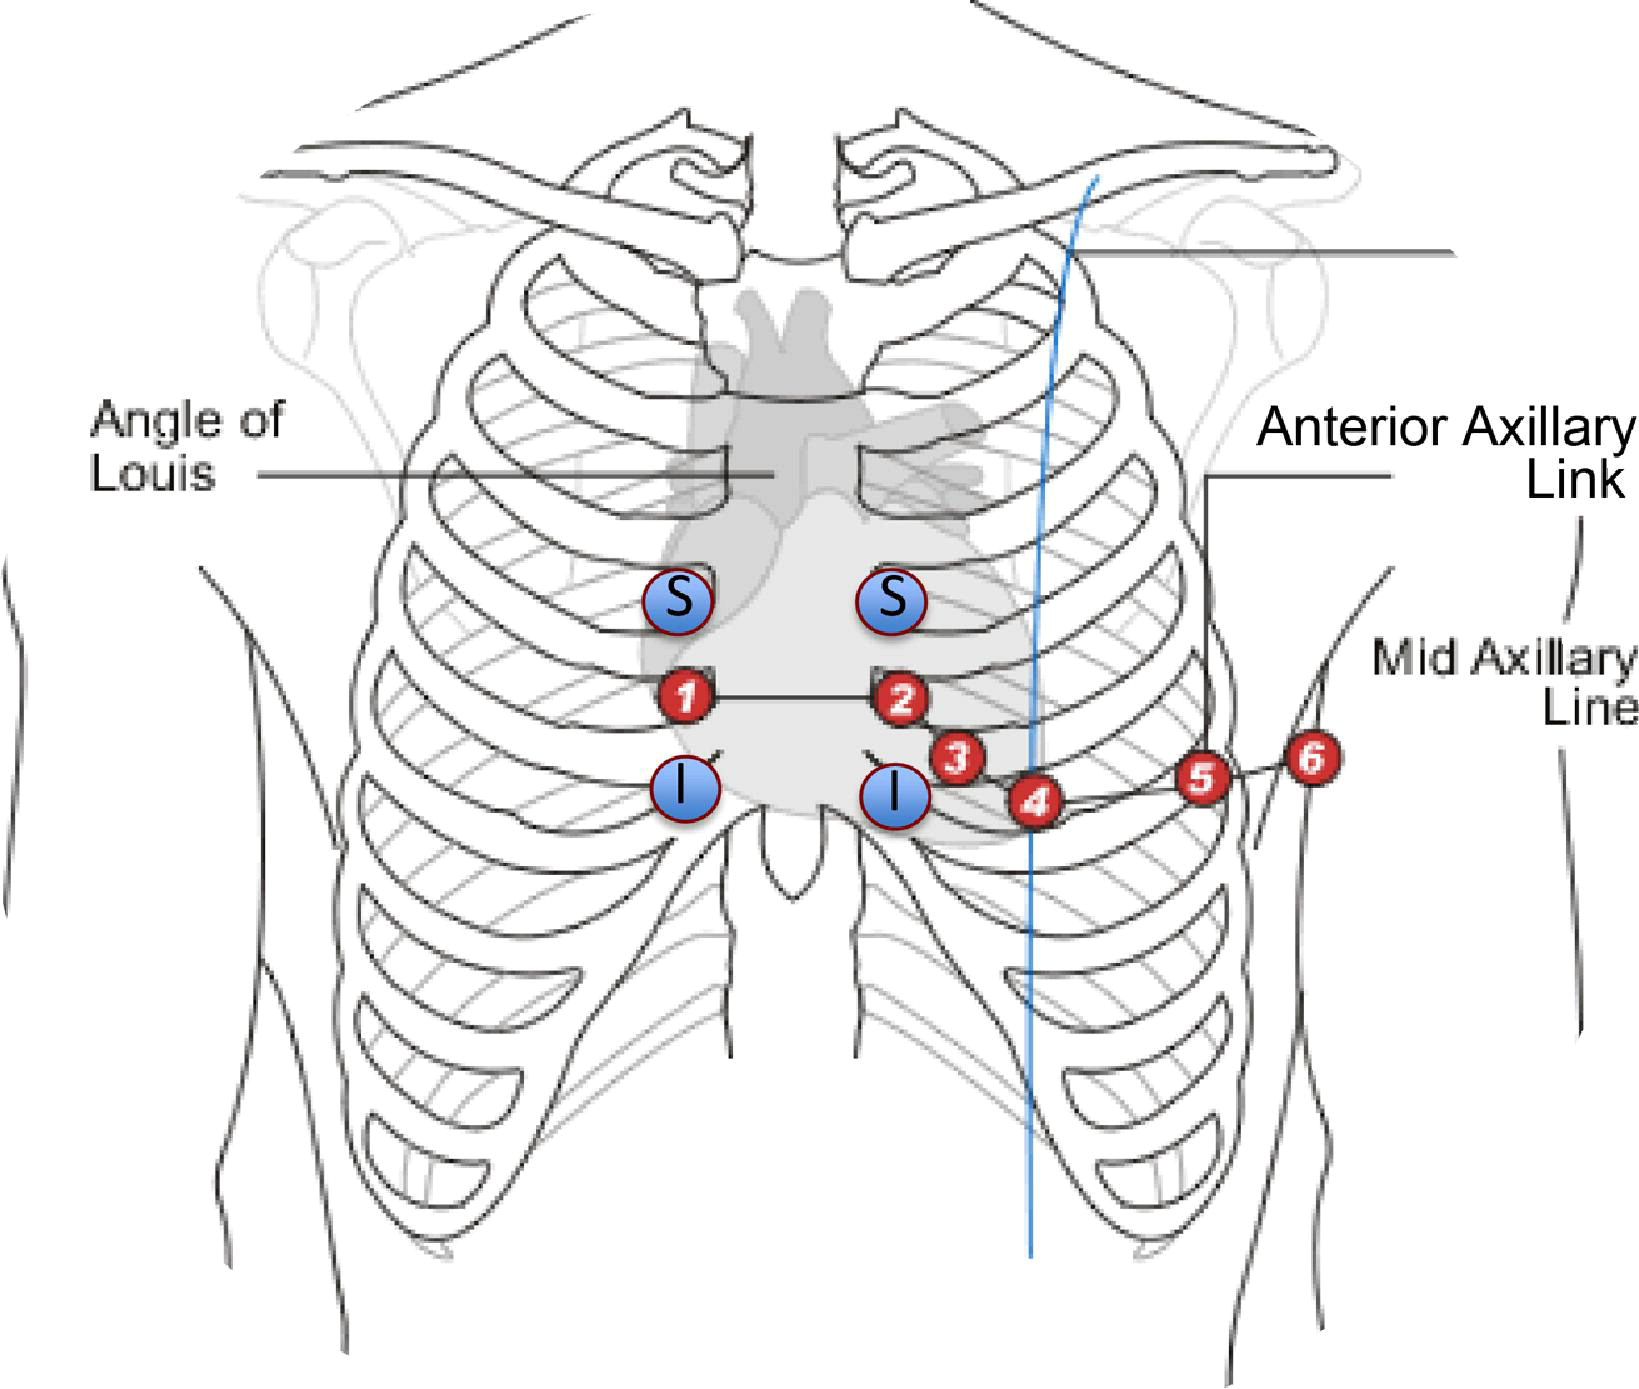 Effect Of Electrocardiographic Lead Placement On Localization Of Outflow Tract Tachycardias